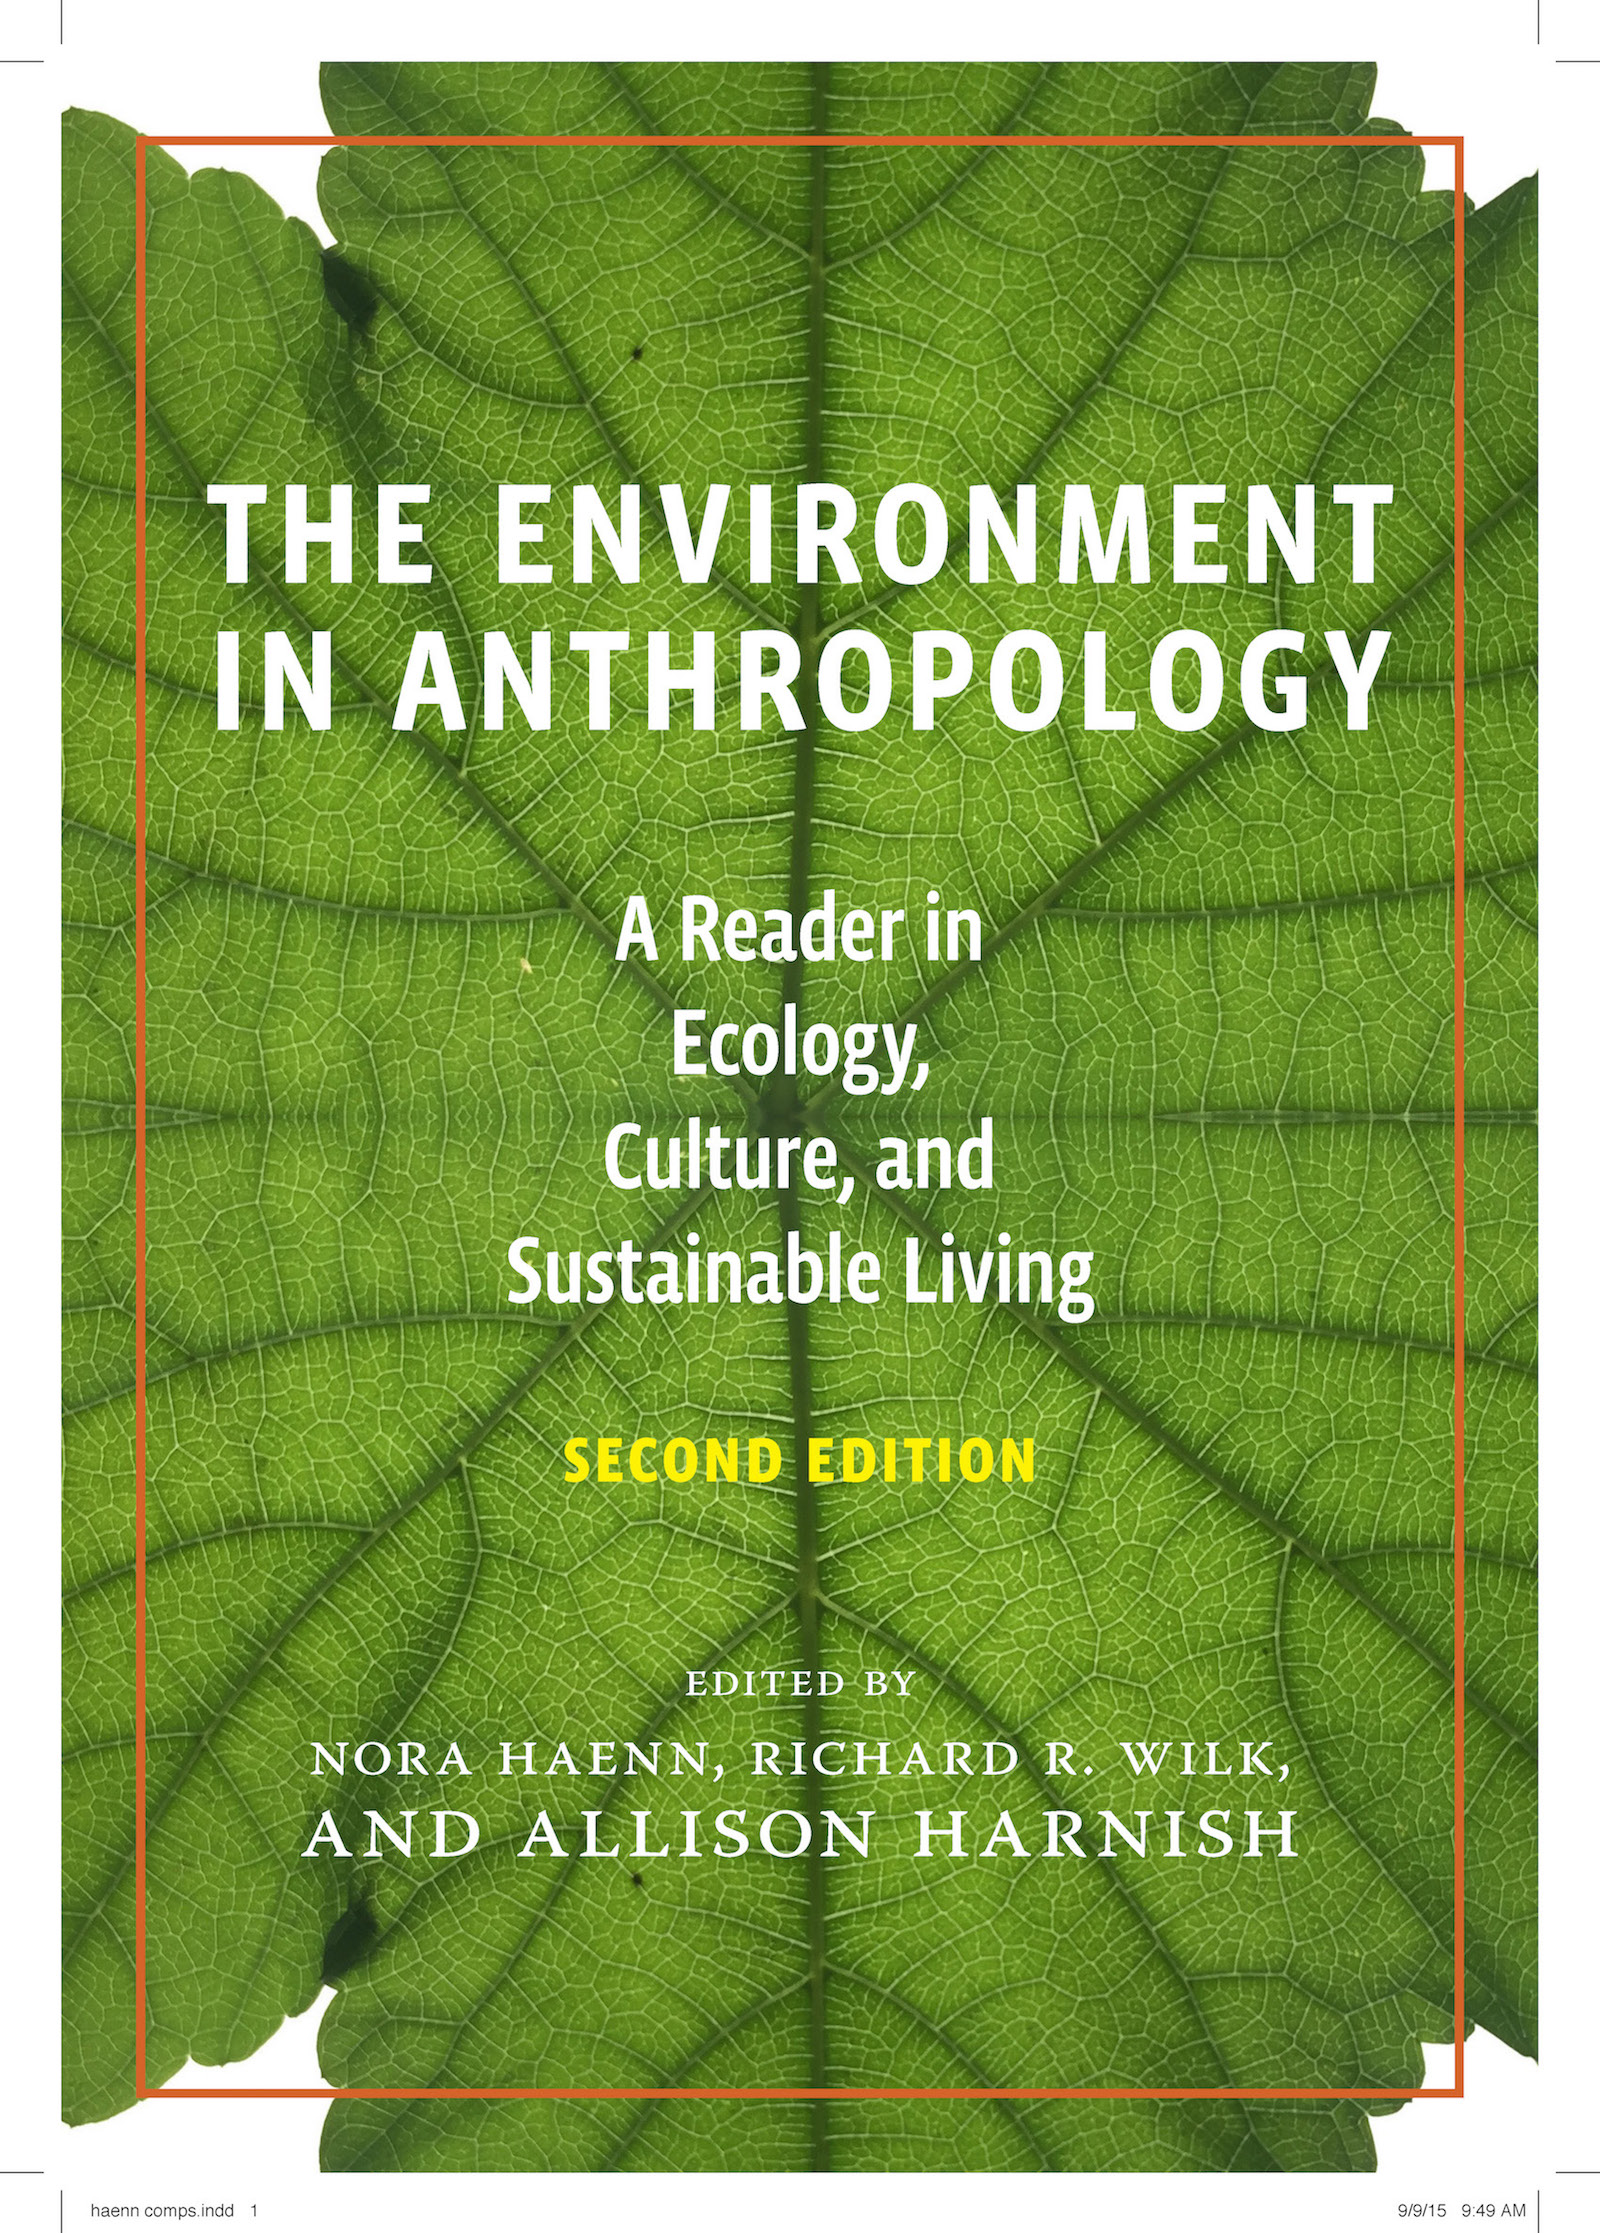 The Environment in Anthropology (Second Edition)